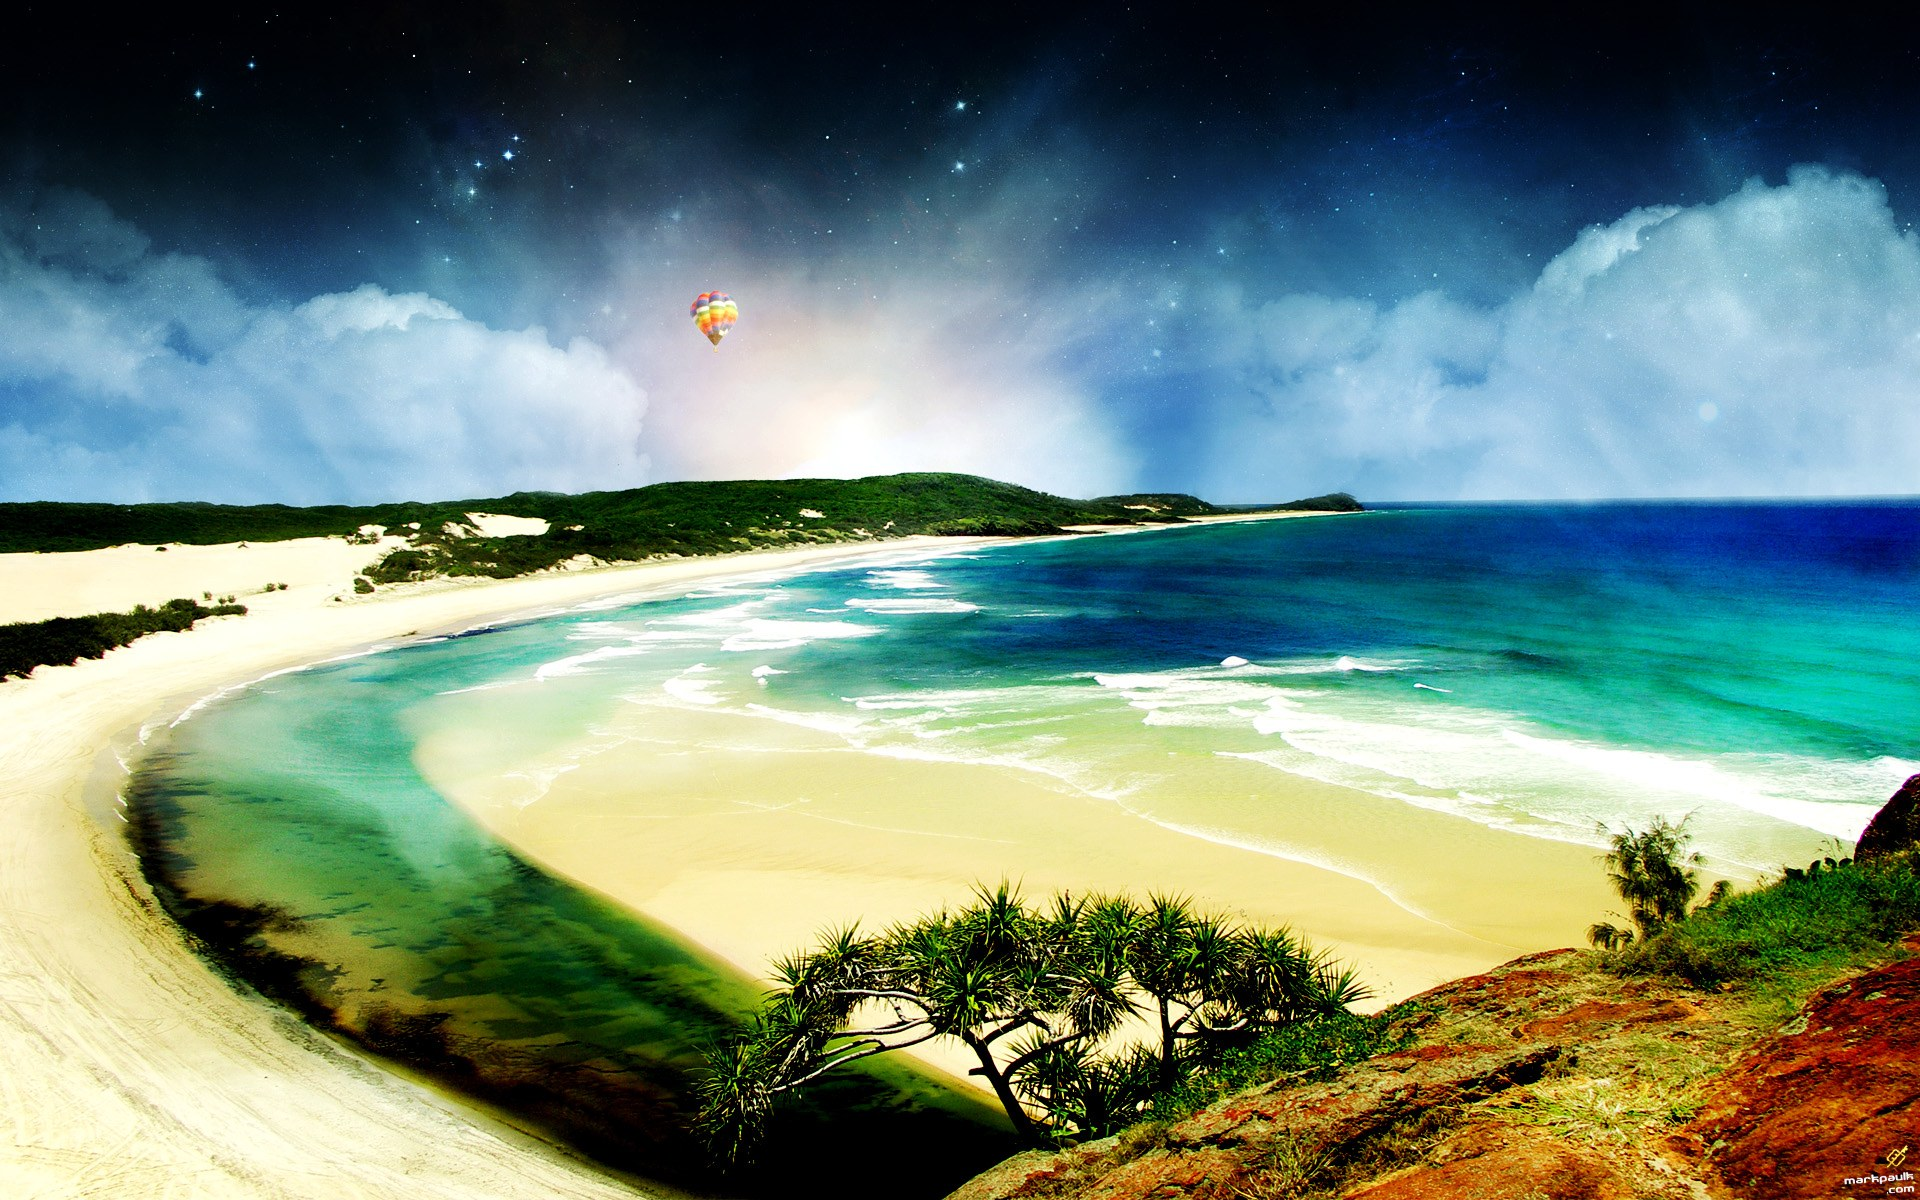 Fantasy-Landscape-by-Photo-Manipulation-x-sktop-wallpaper-wpc5804725